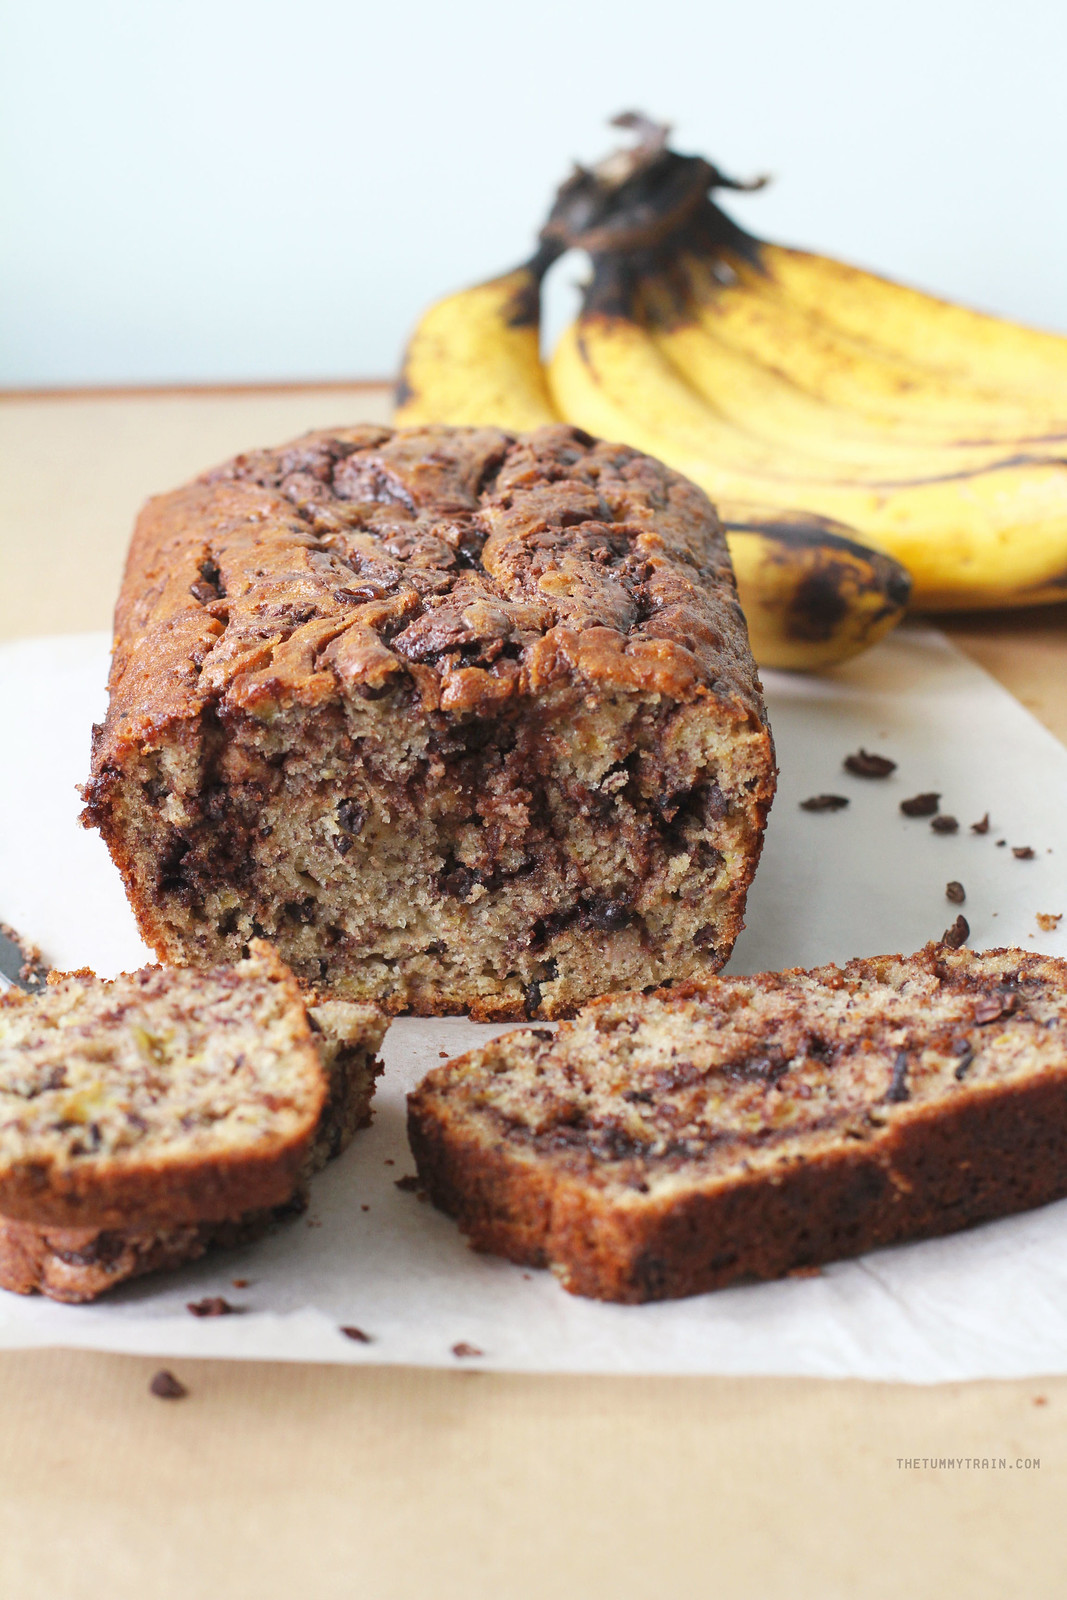 31310361493 333f15dea9 h - Double trouble with this particular variation of a Chocolate Banana Bread Recipe